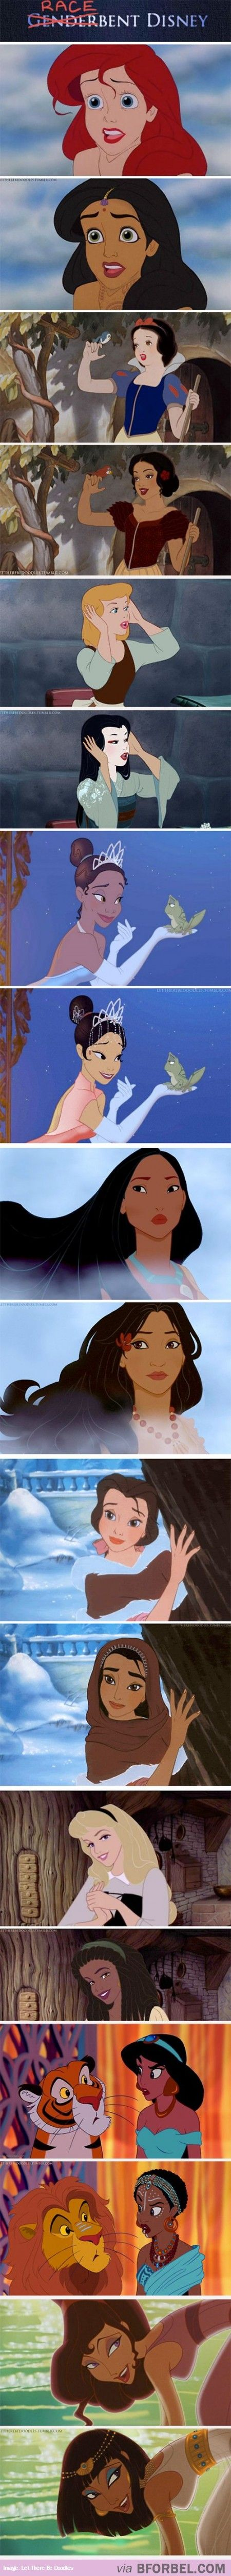 9 Disney Princesses Now Of Different Races… Very interesting. And they still look gorgeous!